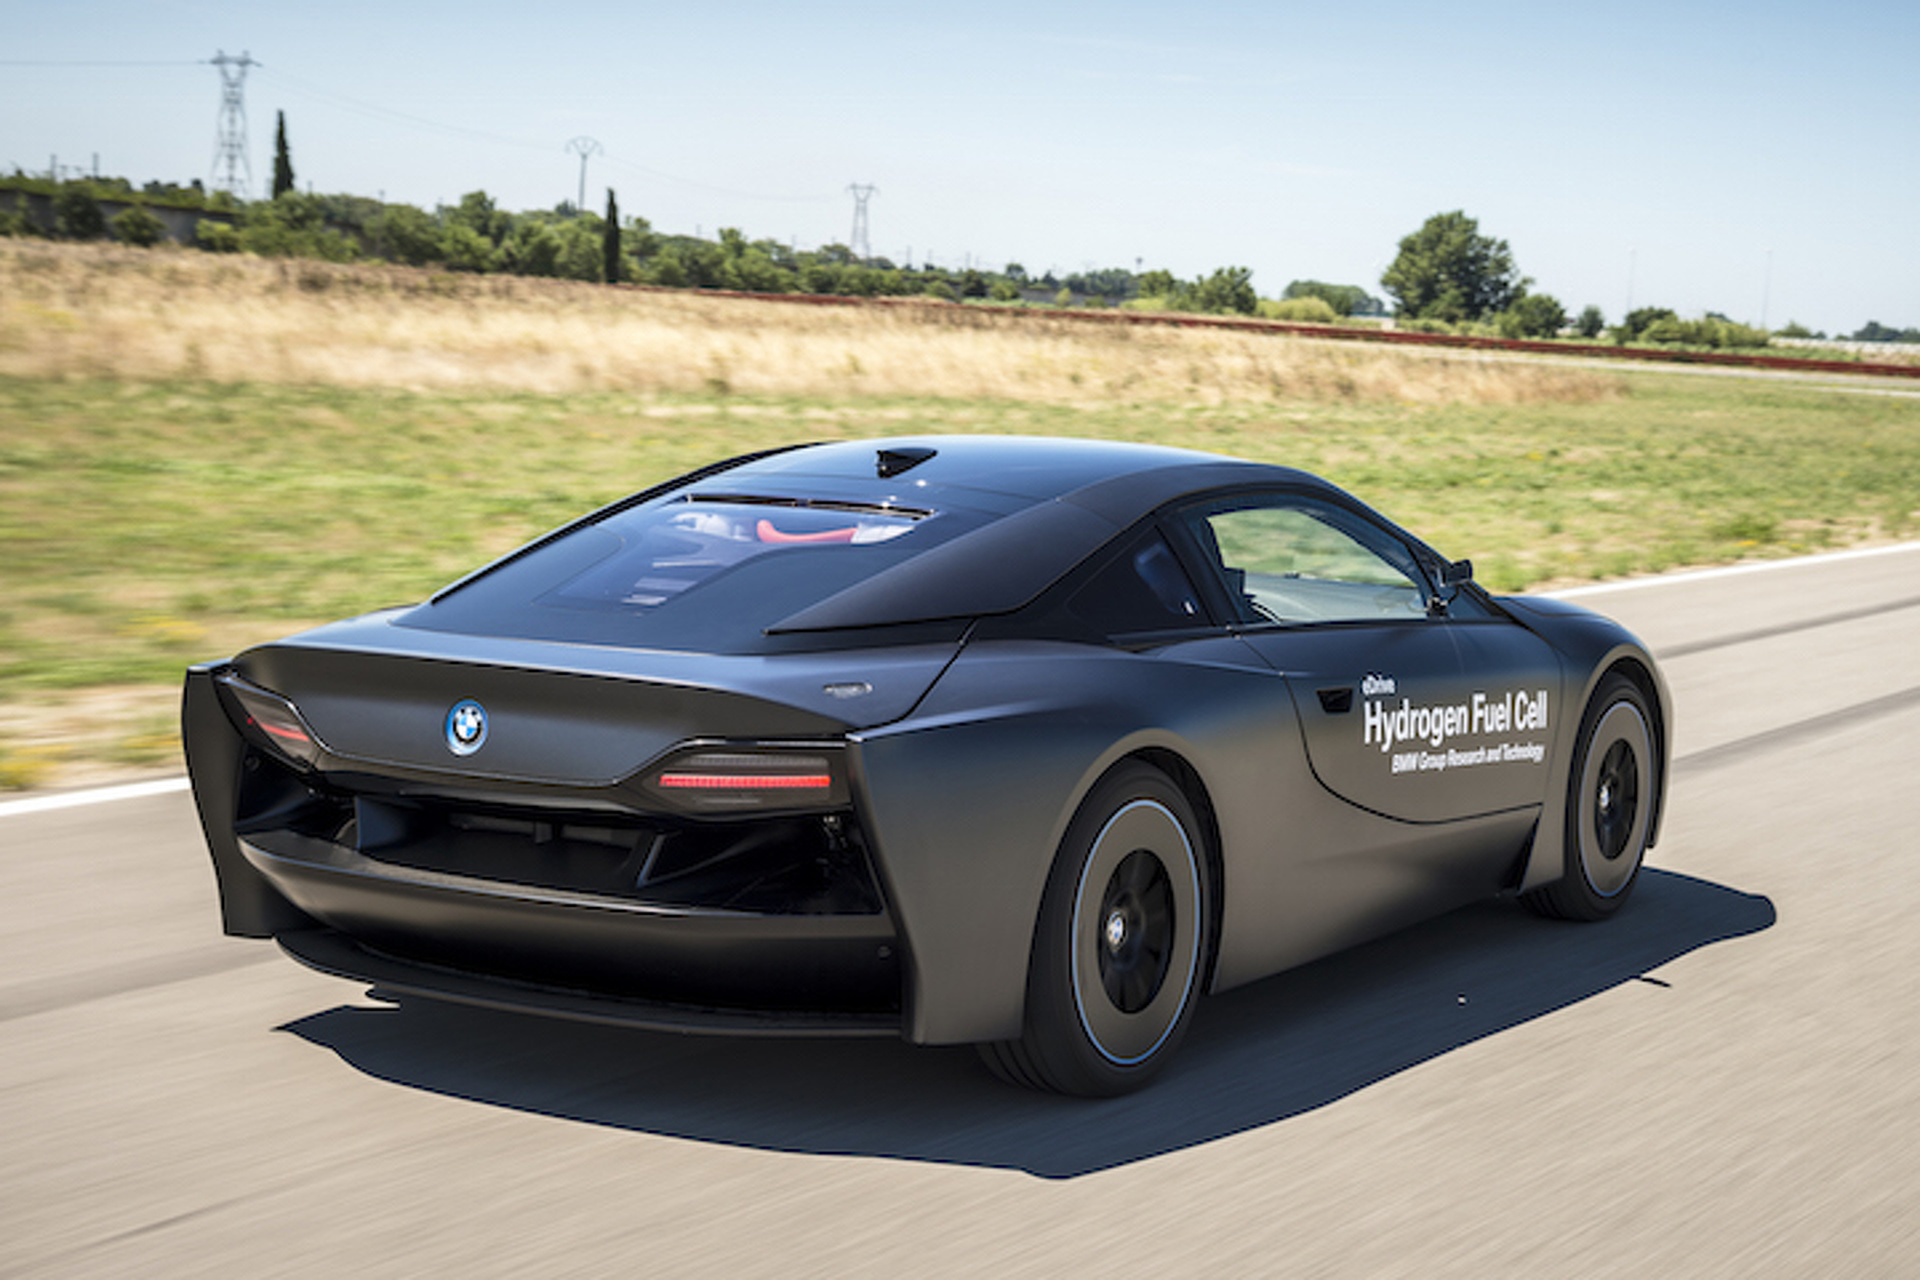 This Weird Looking BMW i8 Runs on Hydrogen